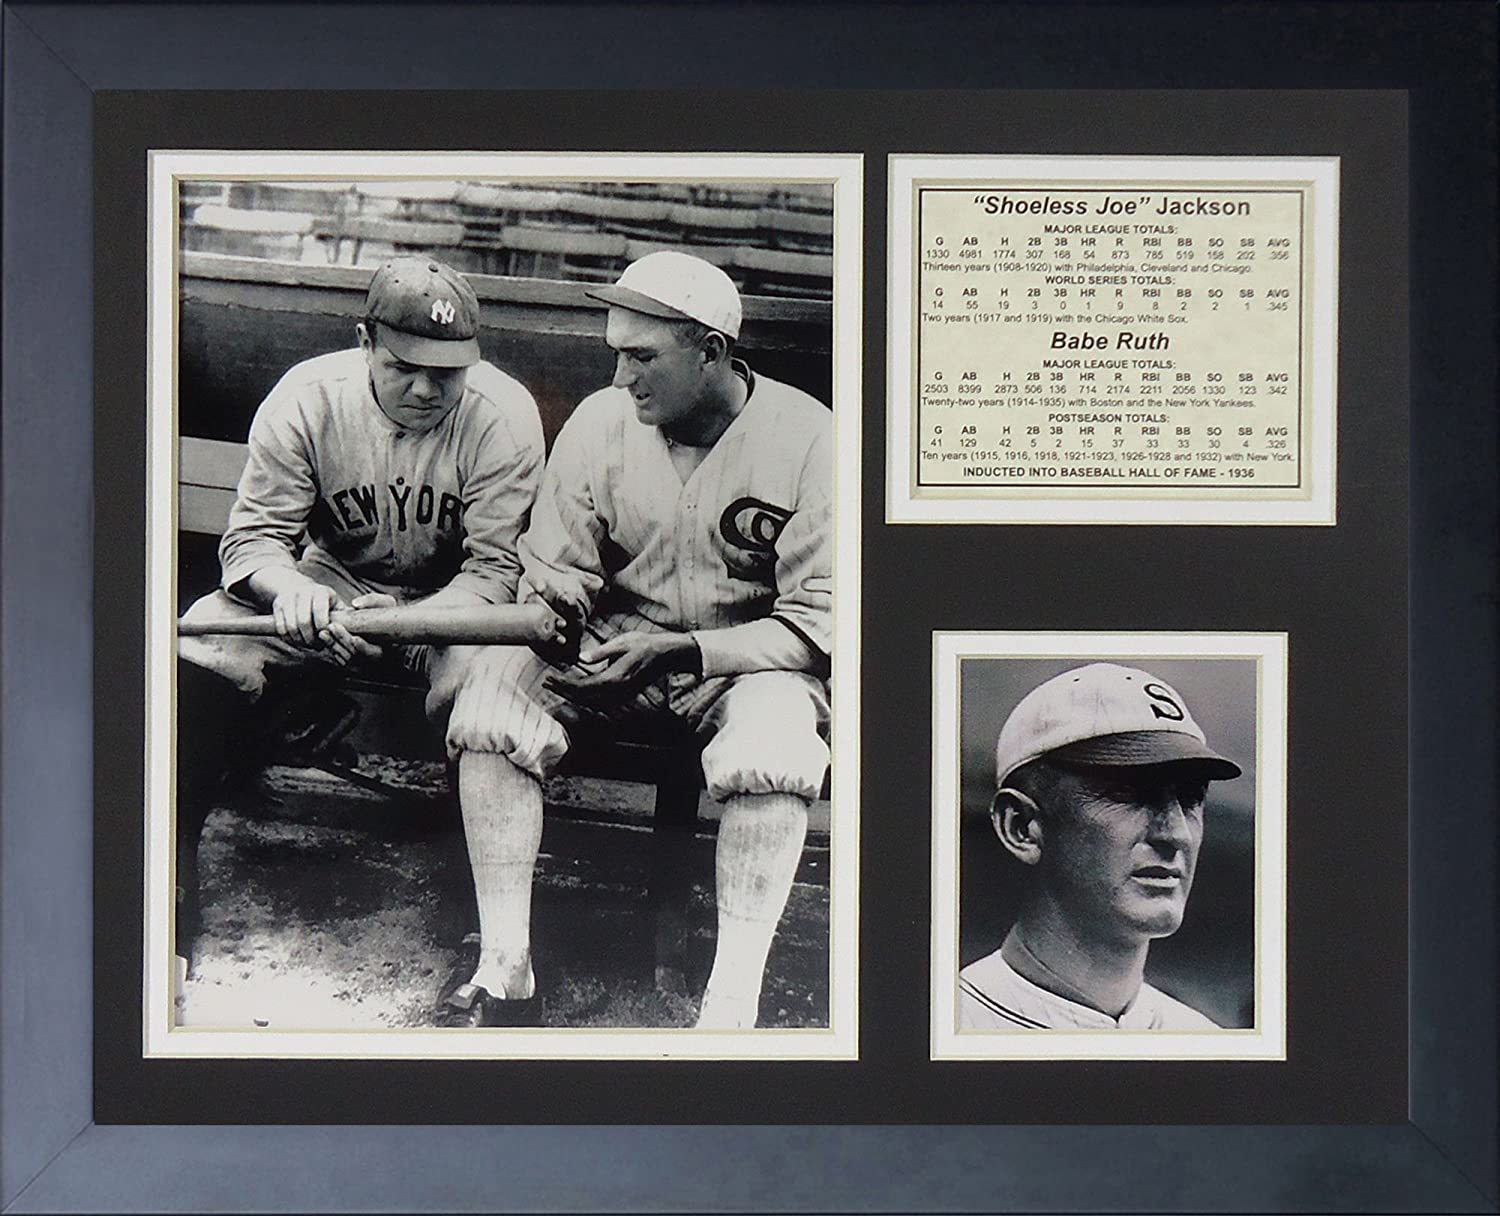 Legends Never Die Shoeless Joe Jackson and Babe Ruth Framed Photo Collage 11 by 14-Inch